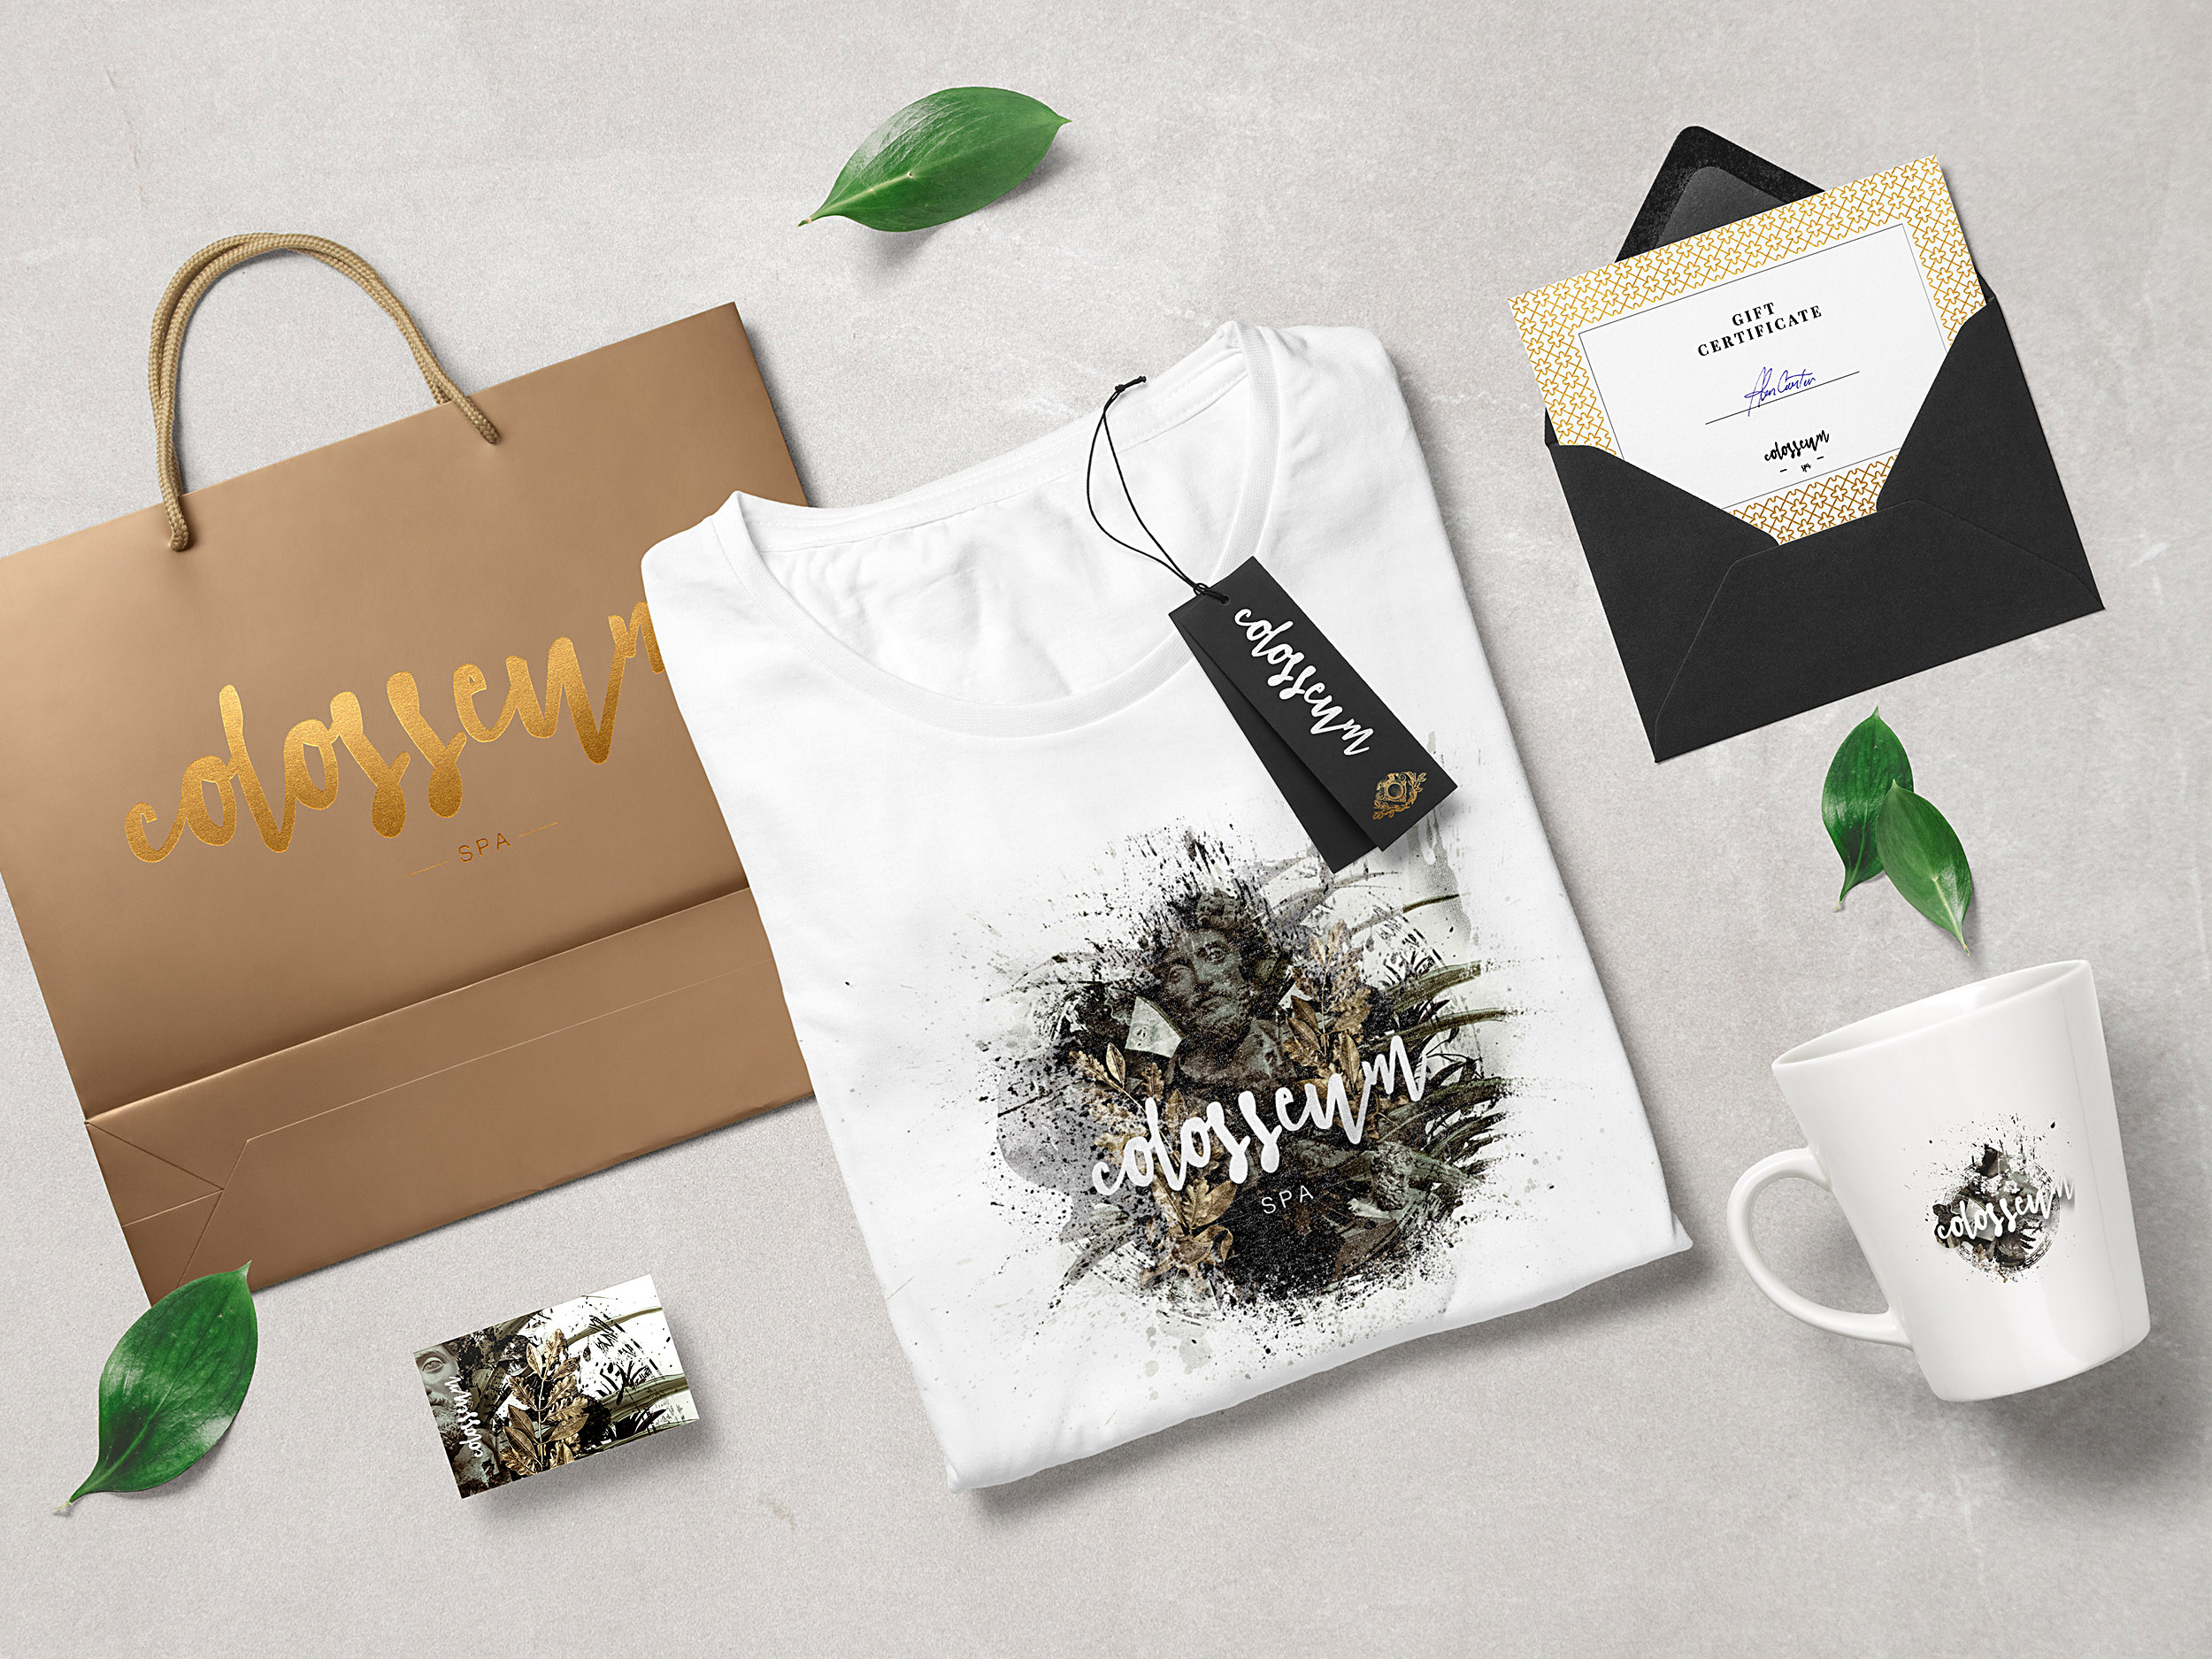 colosseum luxury branding elements